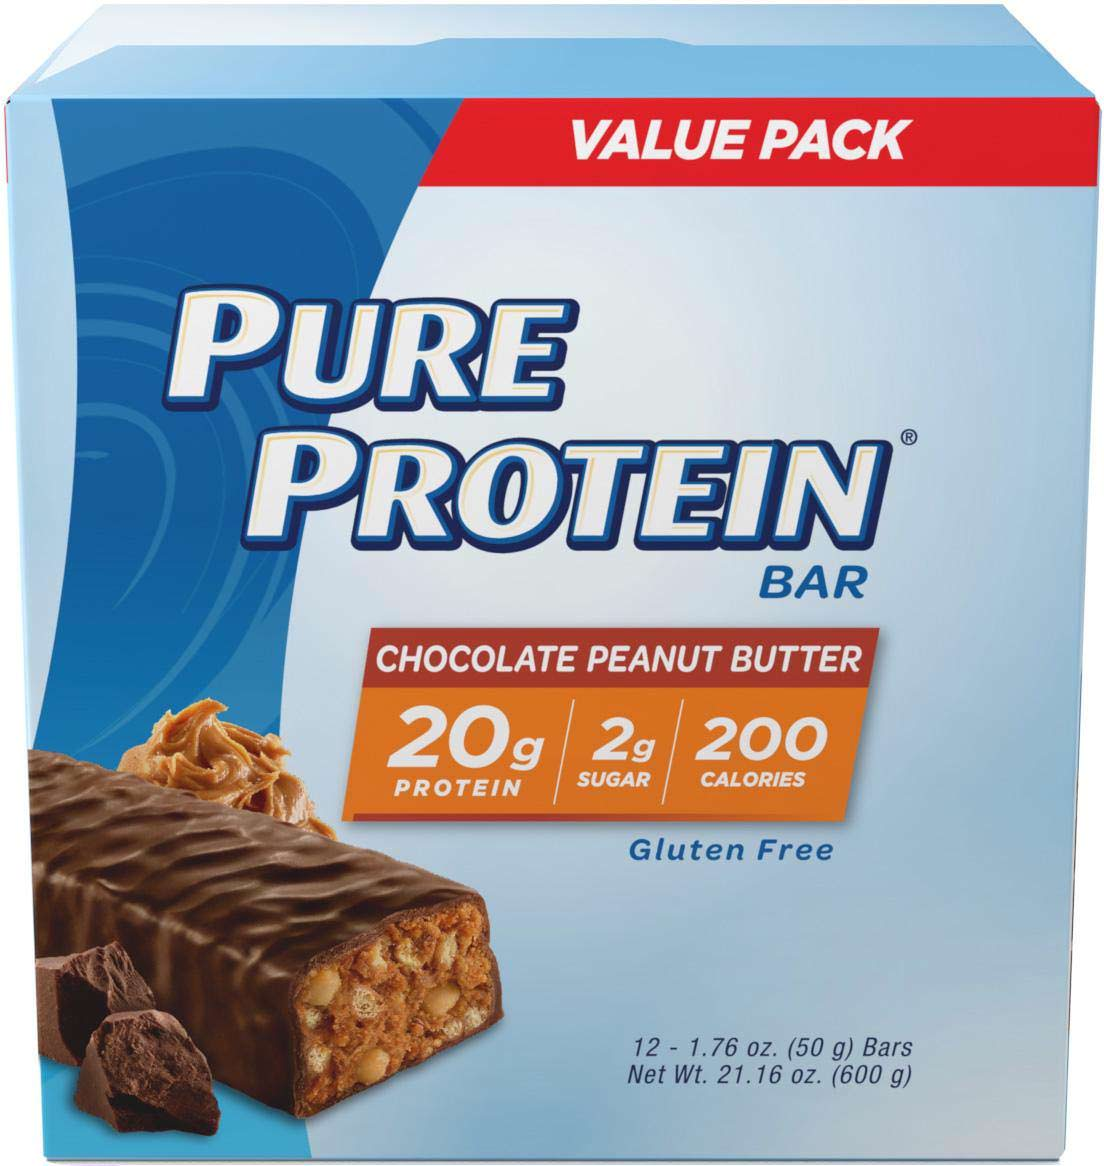 Pure Protein High Protein Bar, Chocolate Peanut Butter, 20g Protein, 12 Ct